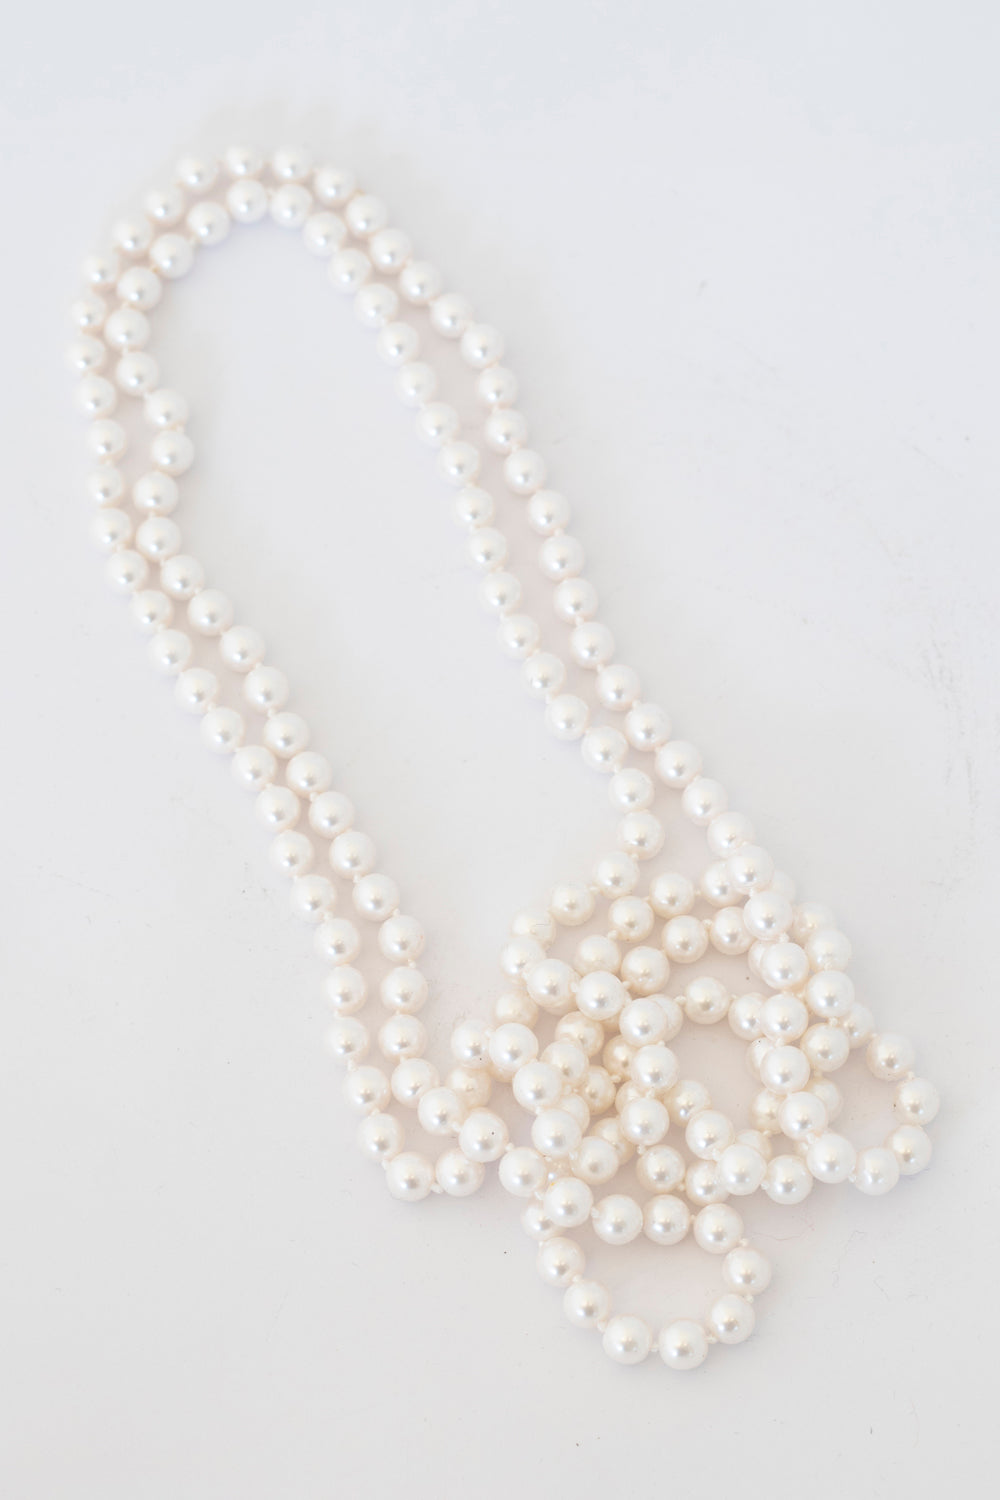 White Pearls Necklace | Annah Stretton | Designer Accessories